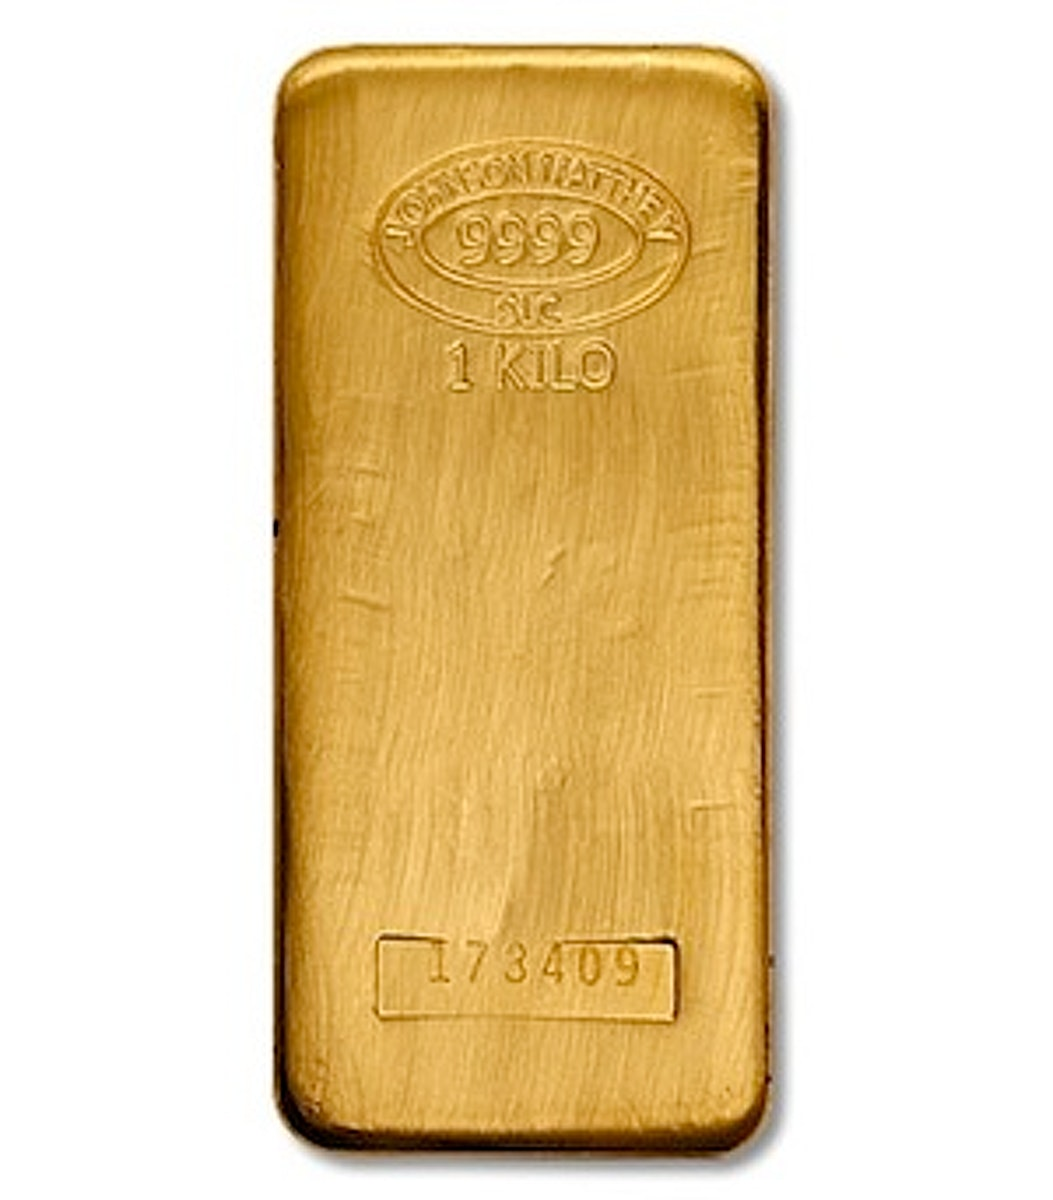 Johnson Matthey Gold Bar 1 Kg Buy Sell Store Gold In Sg